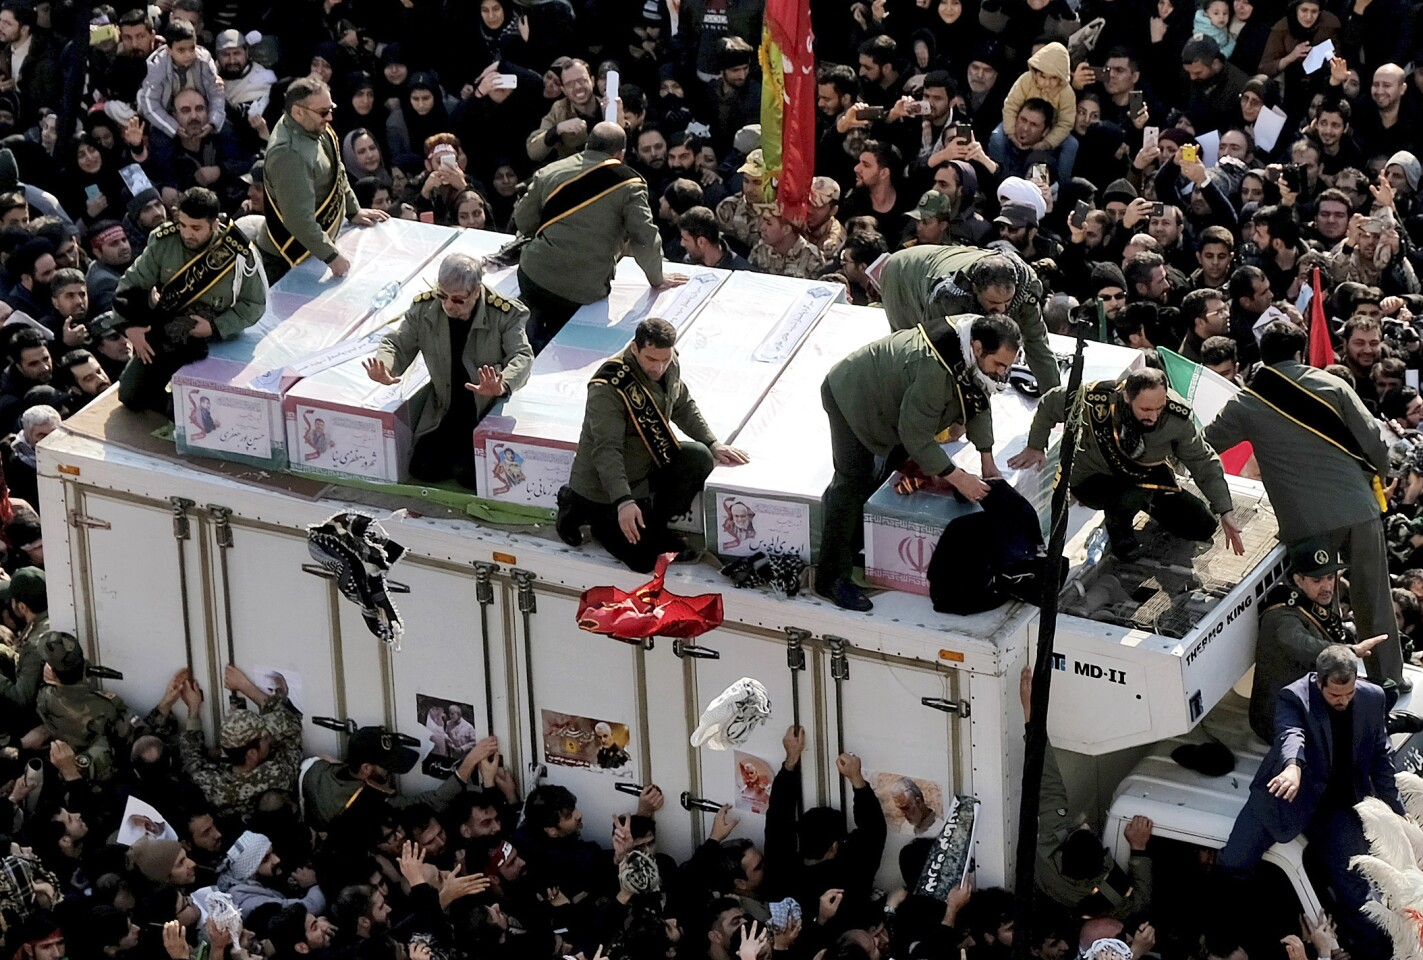 Coffins of Gen. Qassem Soleimani and others who were killed in Iraq by a U.S. drone strike, are carried on a truck surrounded by mourners during a funeral procession at the Enqelab-e-Eslami (Islamic Revolution) square in Tehran, Iran, Monday, Jan. 6, 2020. The processions mark the first time Iran honored a single man with a multi-city ceremony. Not even Ayatollah Ruhollah Khomeini, who founded the Islamic Republic, received such a processional with his death in 1989. Soleimani on Monday will lie in state at Tehran's famed Musalla mosque as the revolutionary leader did before him. (AP Photo/Ebrahim Noroozi)